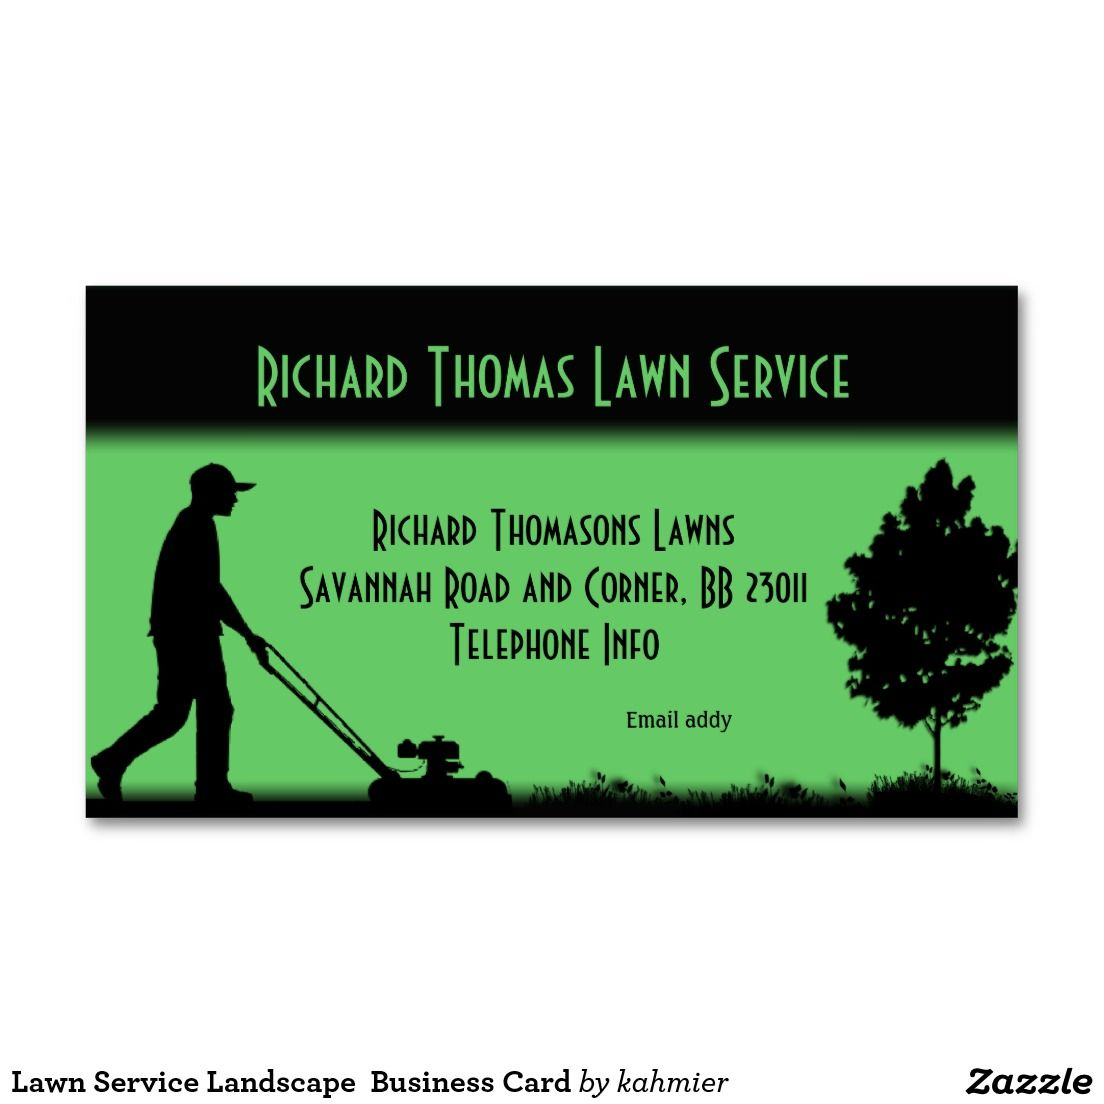 lawn care business card  lawn care business lawn care and lawn